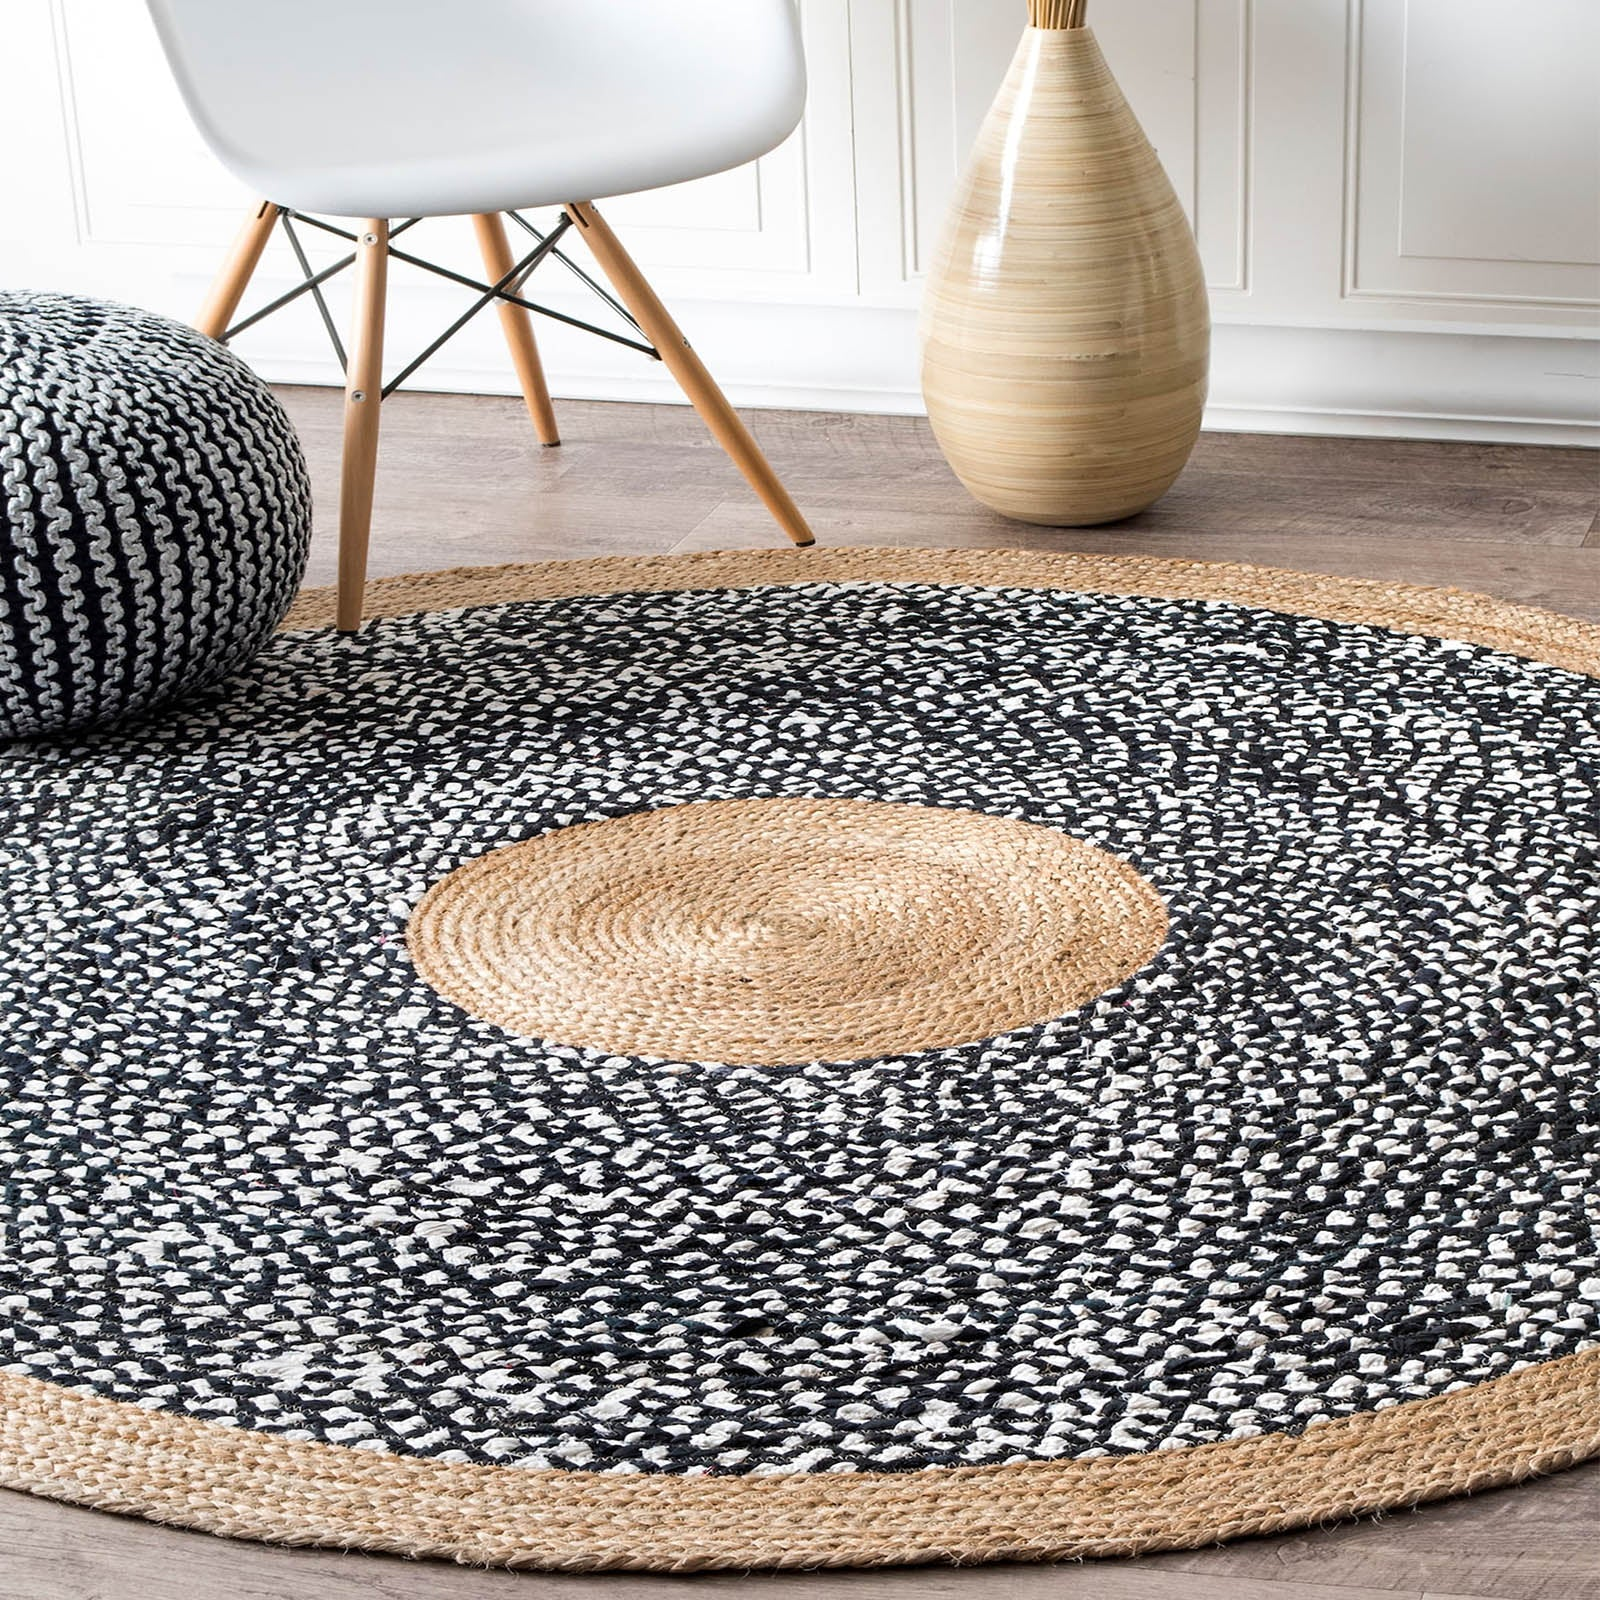 150cm Braided Round handmade Wool Rug JH-2350-L -  سجادة صوف دائرية مضفرة مقاس 50 سم - Shop Online Furniture and Home Decor Store in Dubai, UAE at ebarza